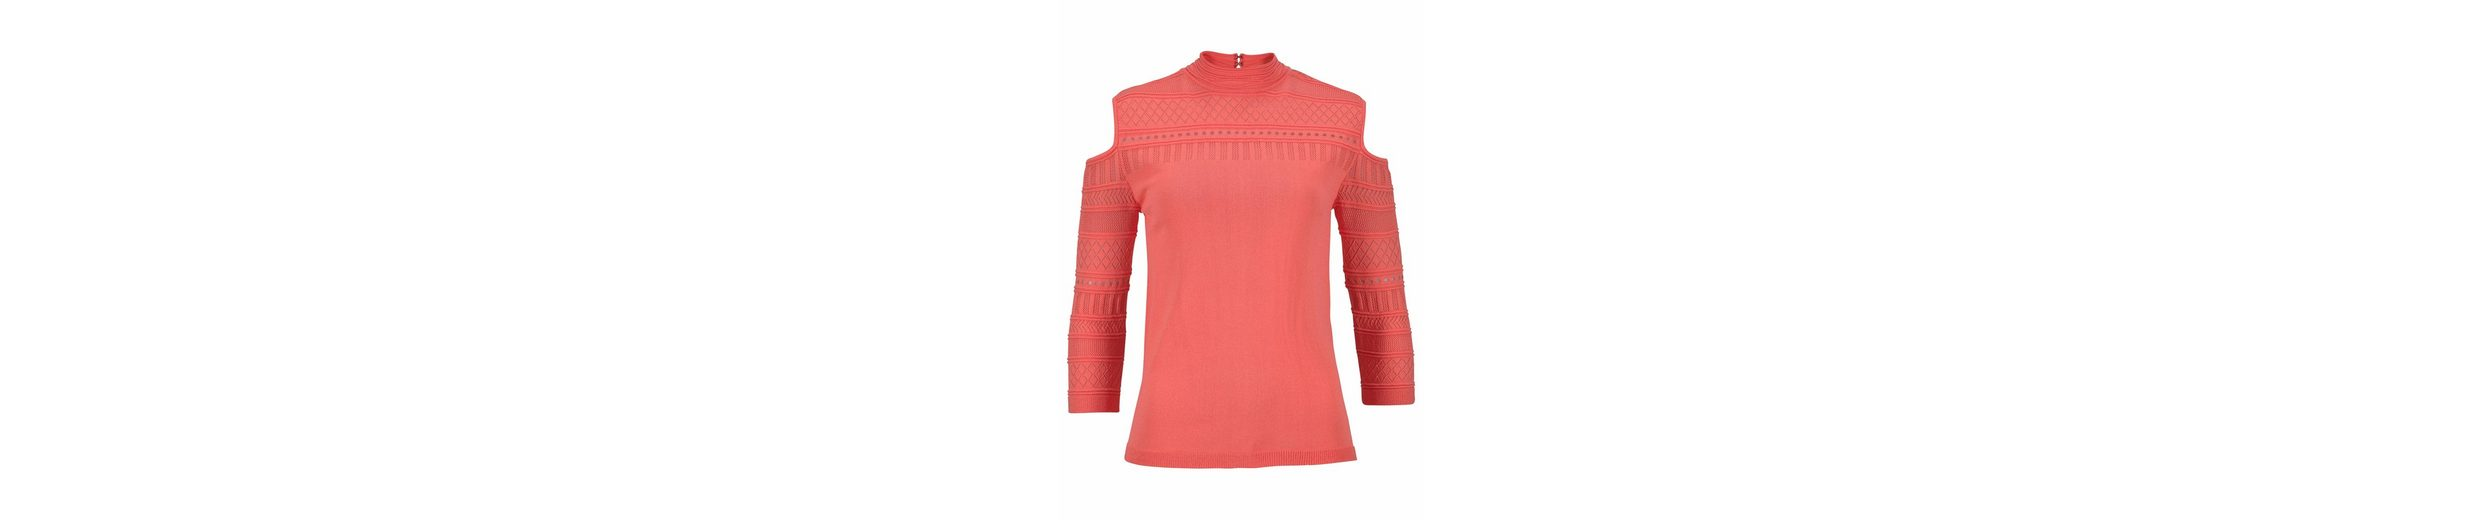 mit Melrose Ajourpullover Cut Melrose Ajourpullover Schulter Outs mit Schulter BXxwq7AAP